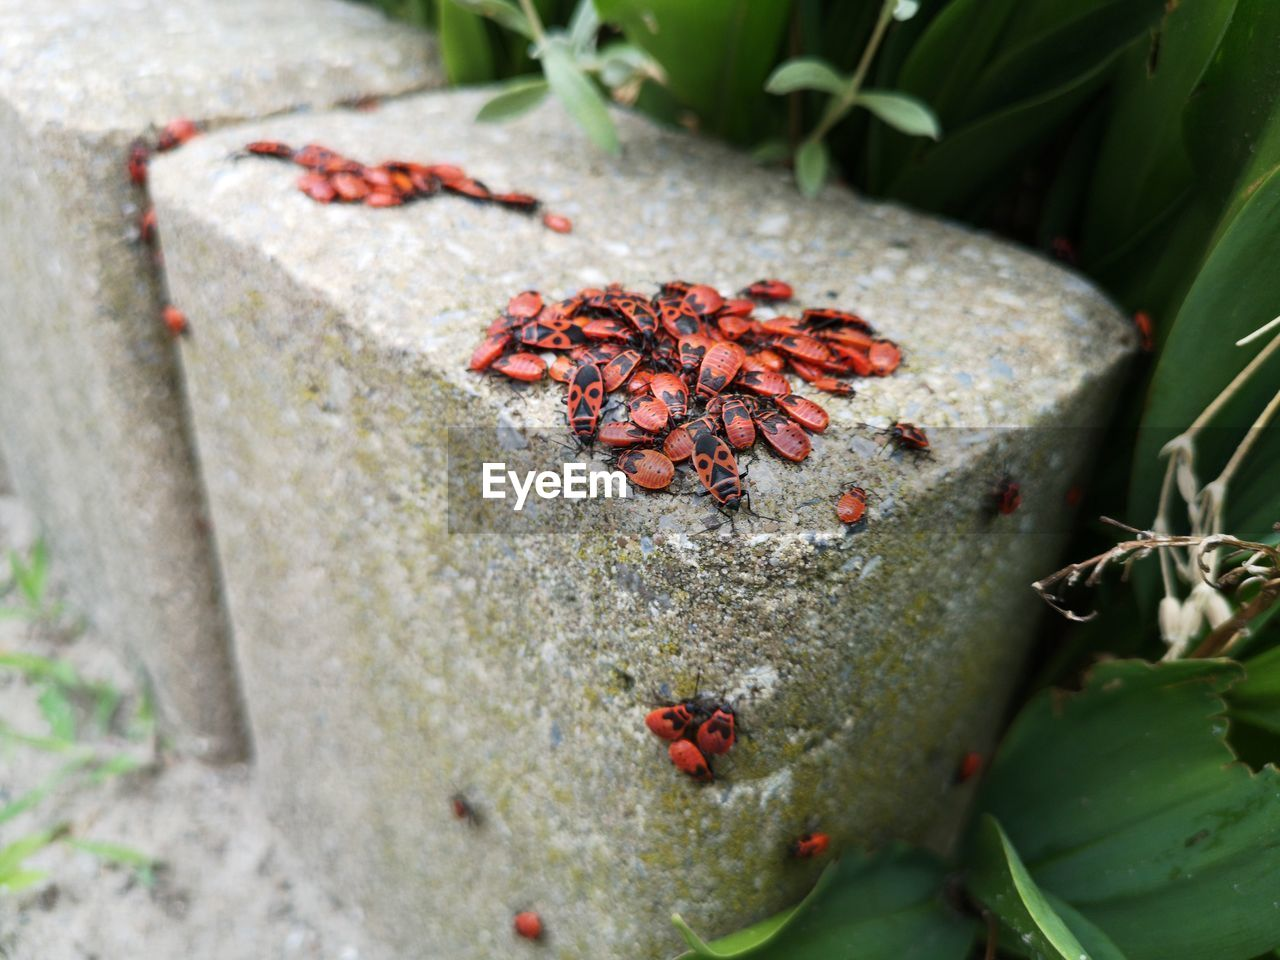 HIGH ANGLE VIEW OF RED BERRIES ON CONCRETE